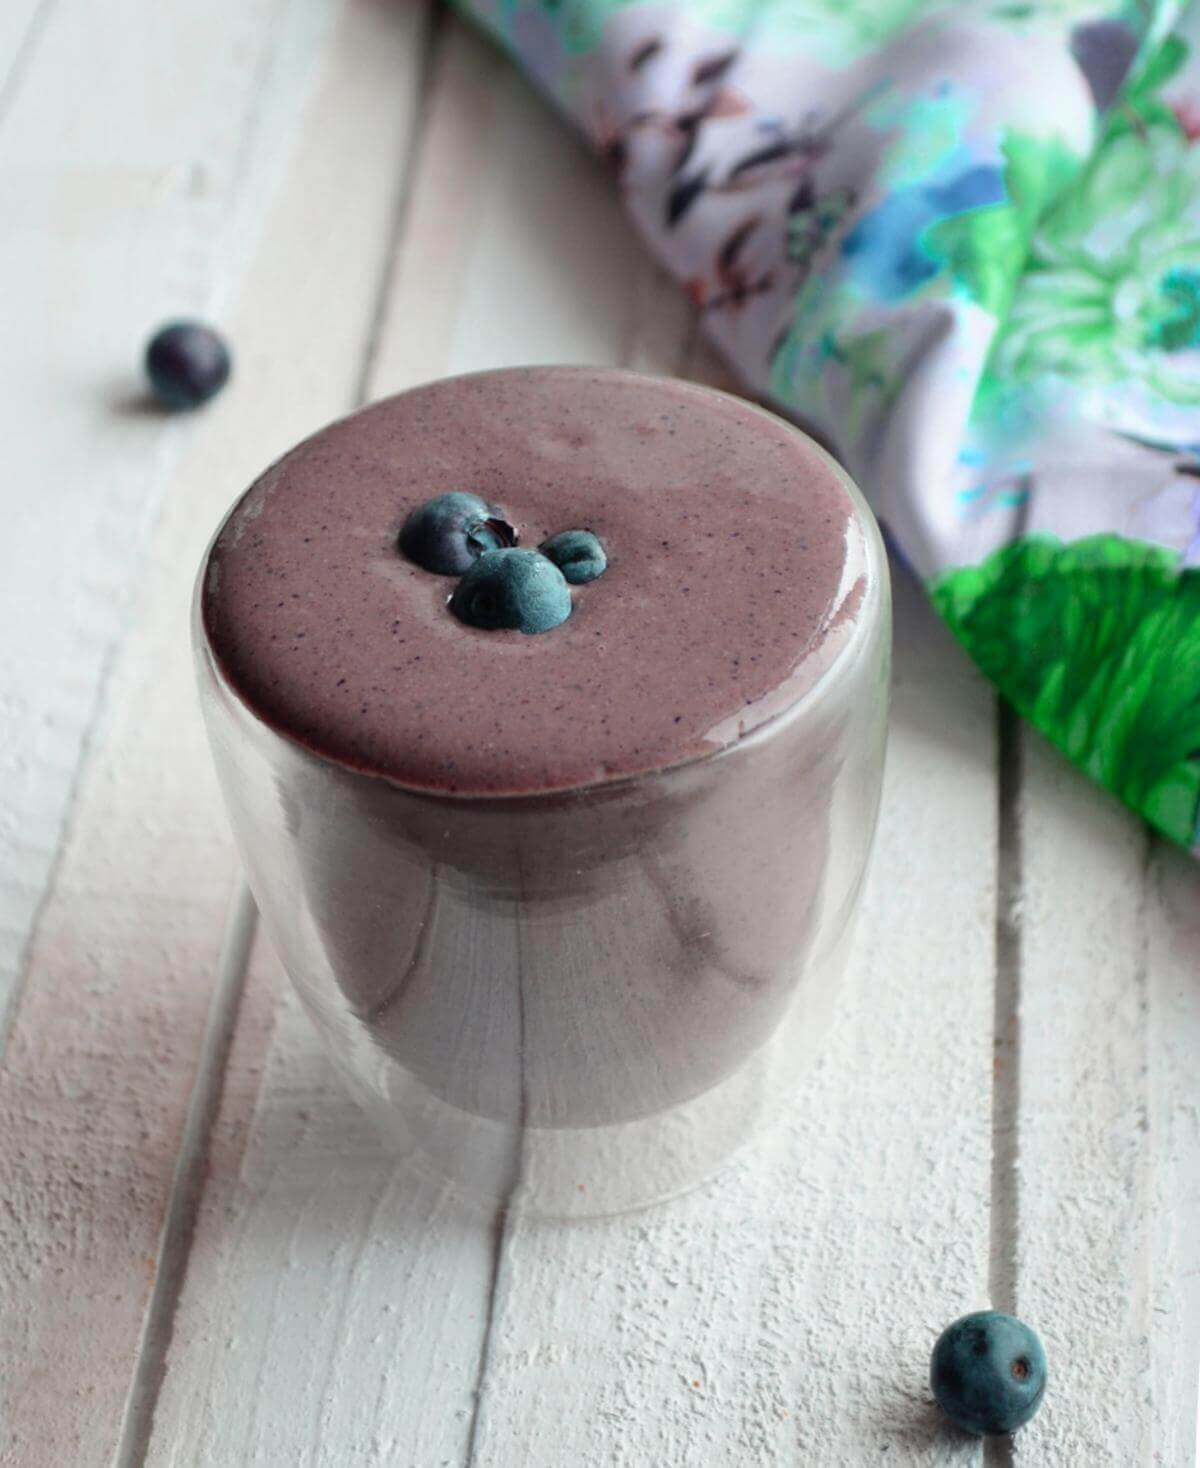 This blueberry detox smoothie is tasty, healthy, and a great way to start your day!